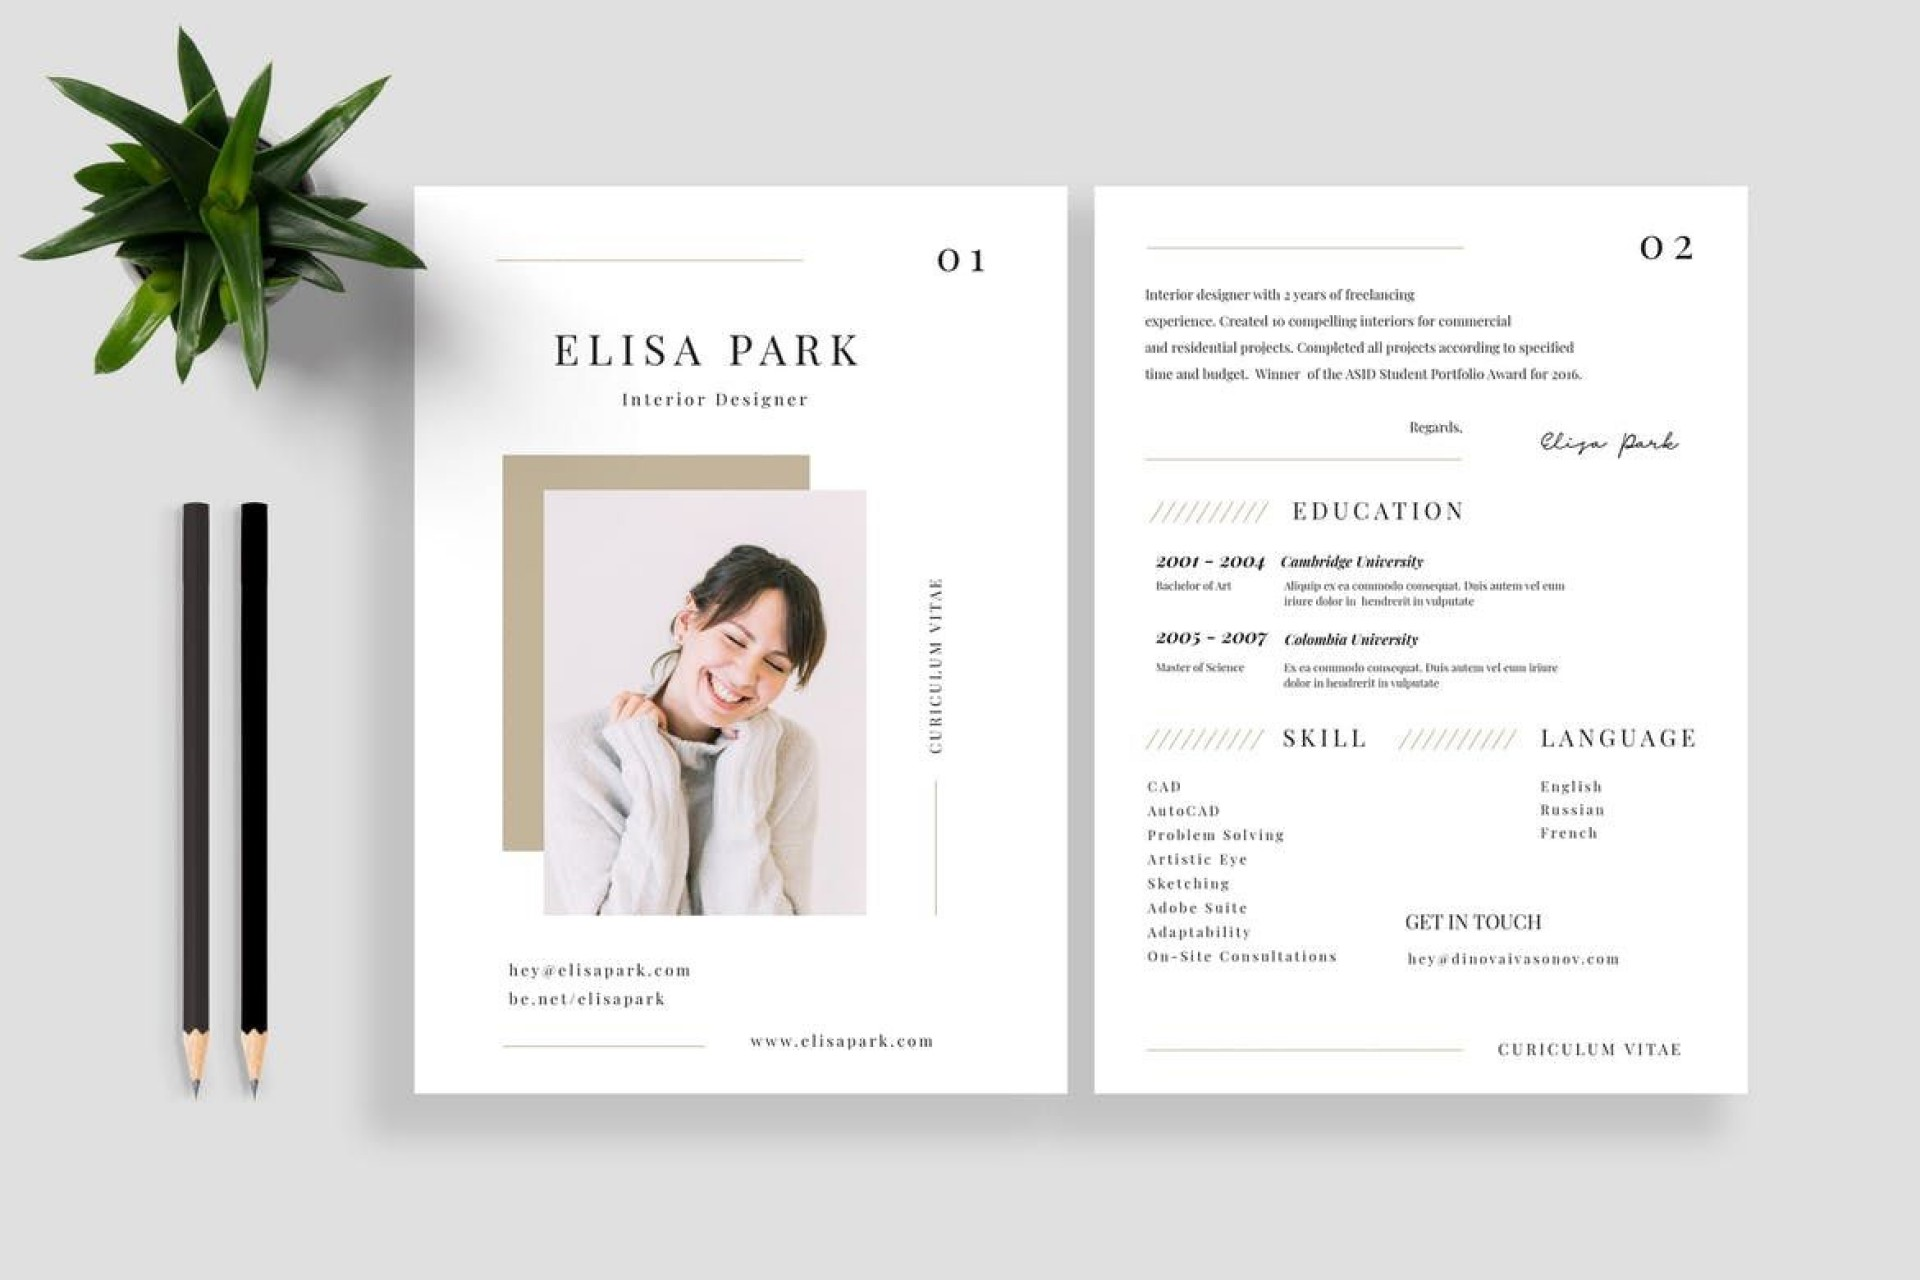 001 Fascinating Best Resume Template 2020 Photo  Top Rated Free Download Reddit1920